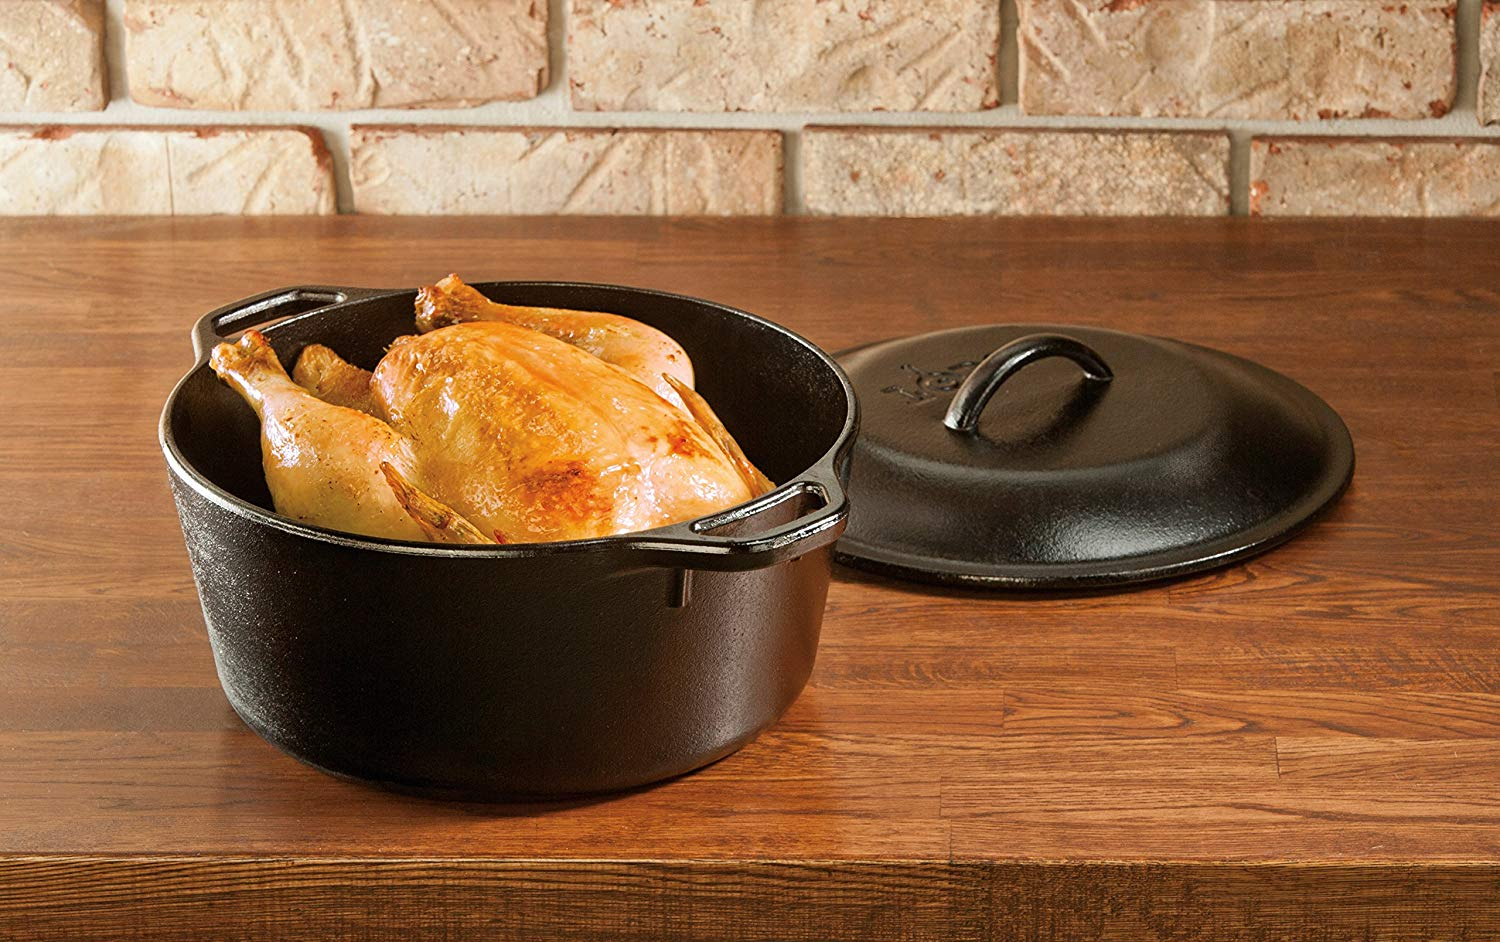 Lodge L8DOL3HH41PLT Cast-Iron 5-quart Dutch Oven coupled with Handle Holders